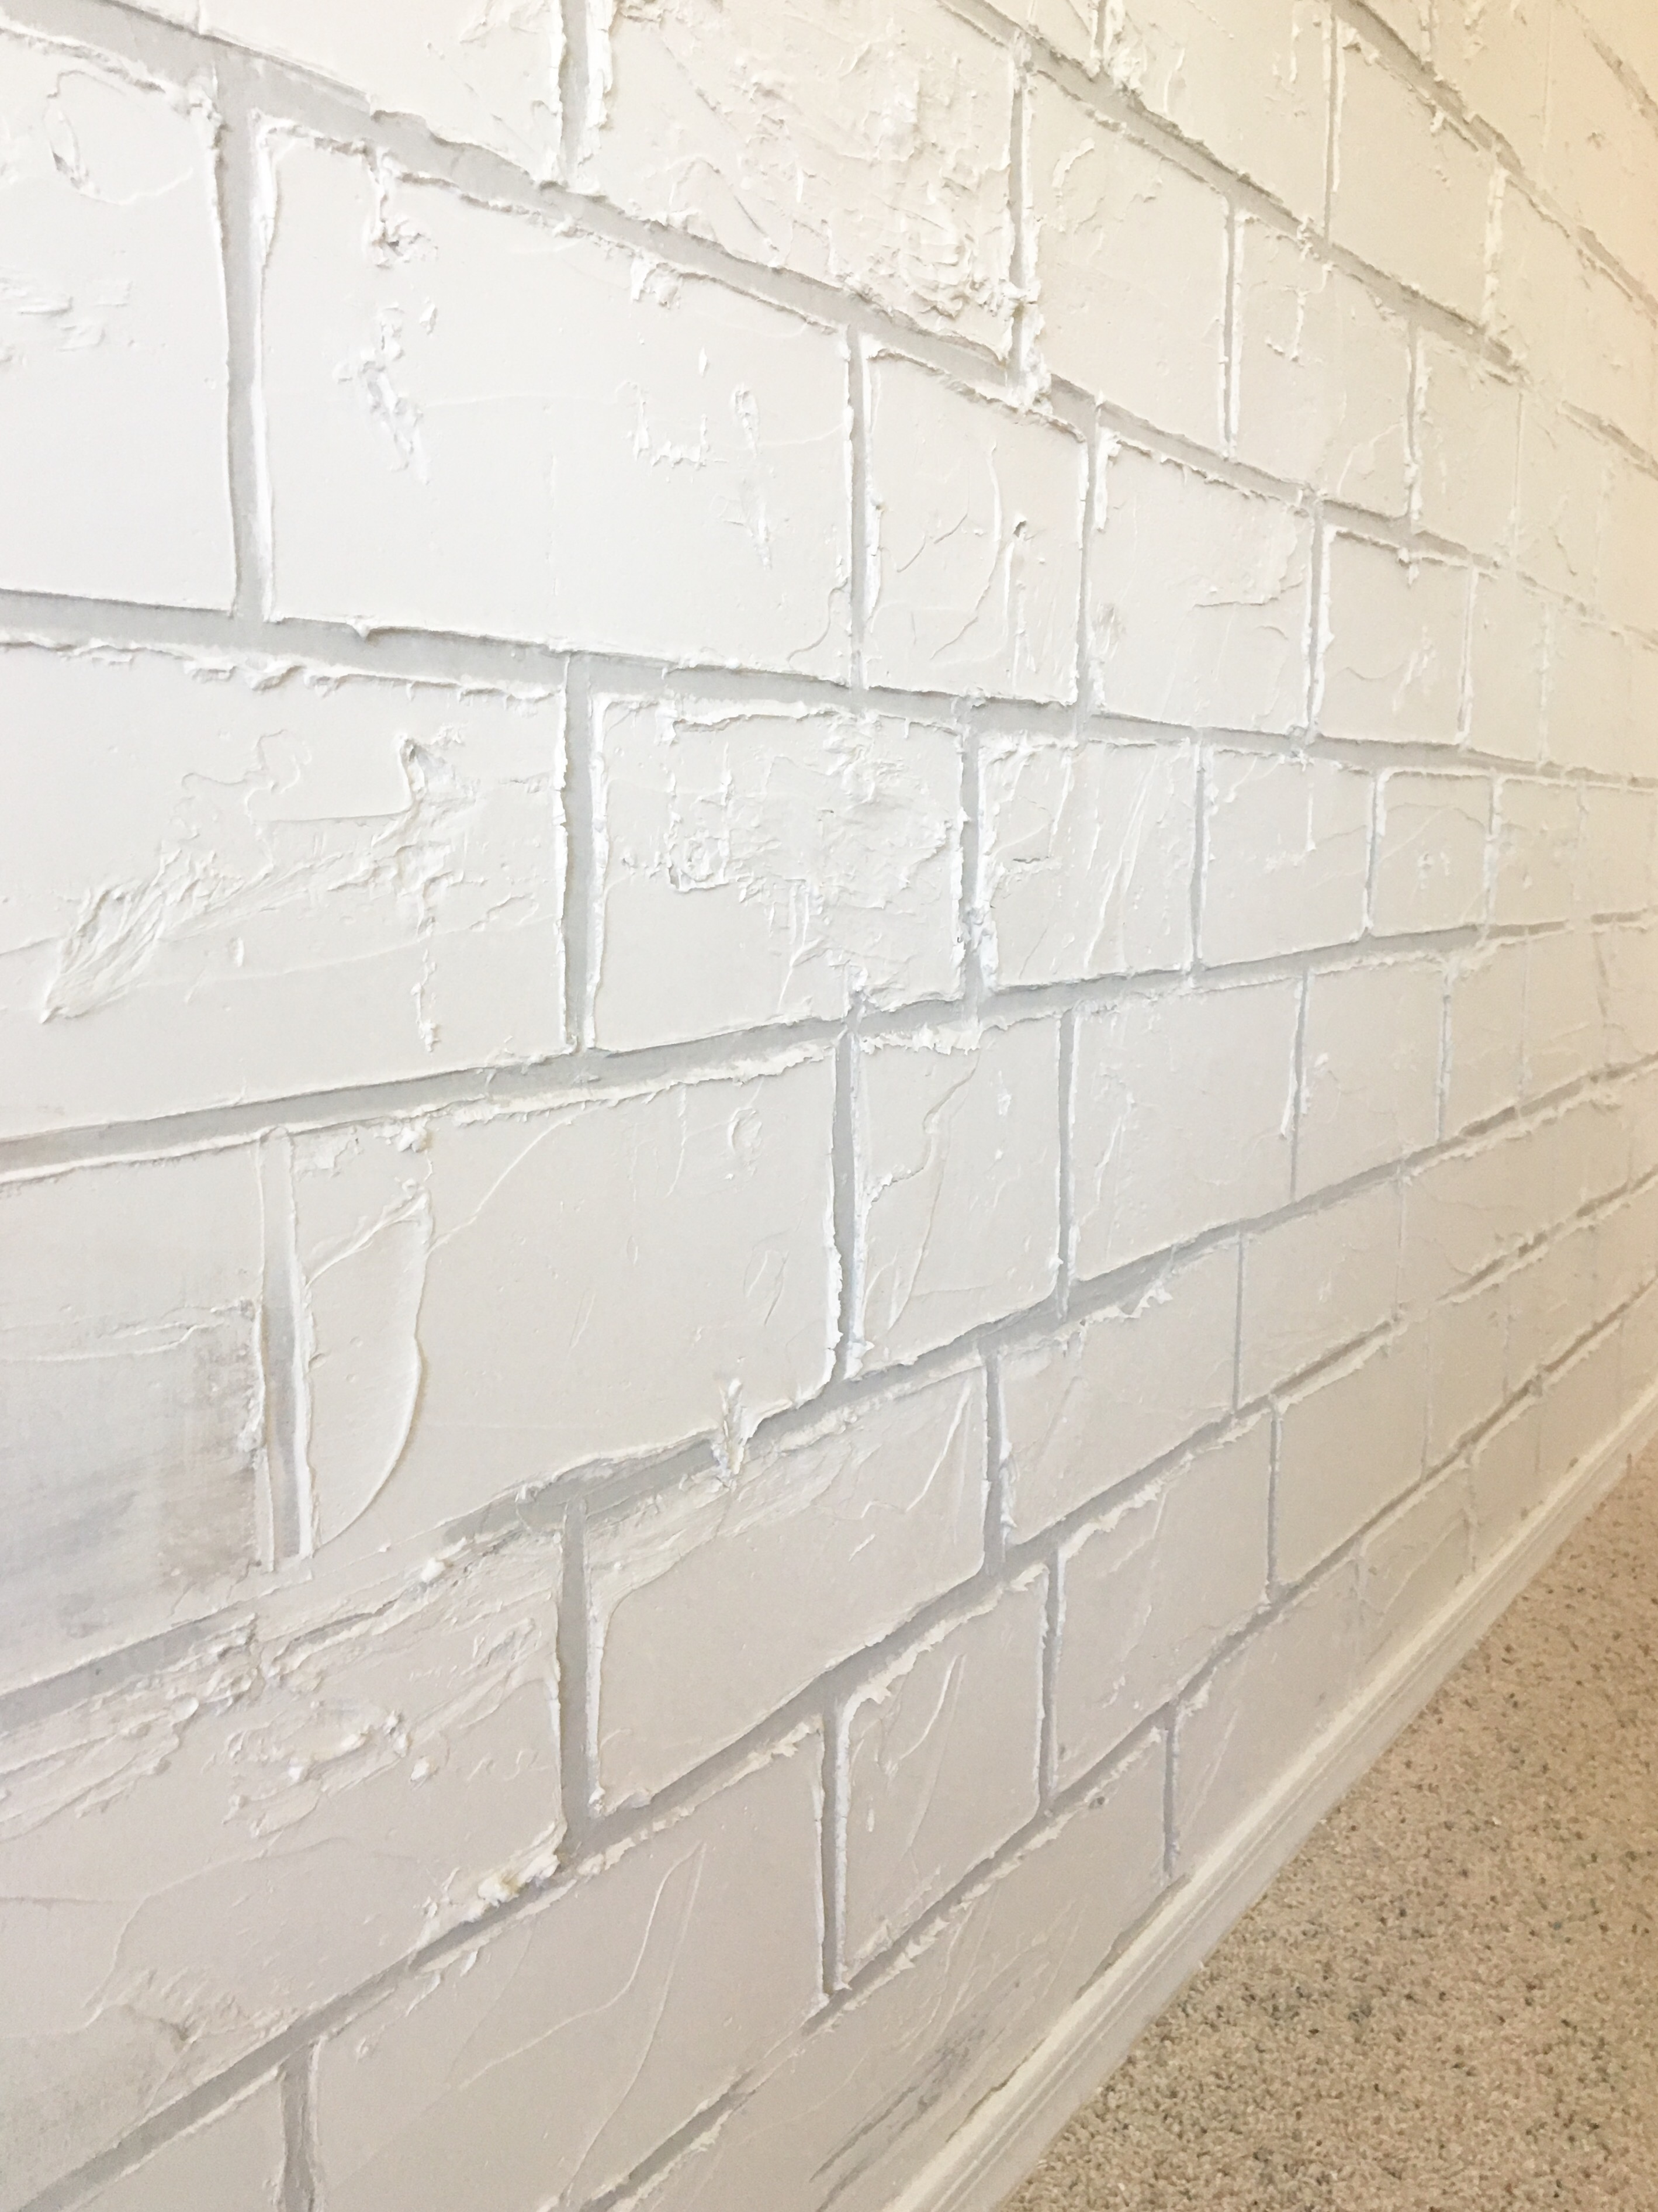 I started off by painting all of the grout lines with Toasty Grey Behr Paint  in flat finish. I used a 1 purdy brush for painting the grout and the  bricks.